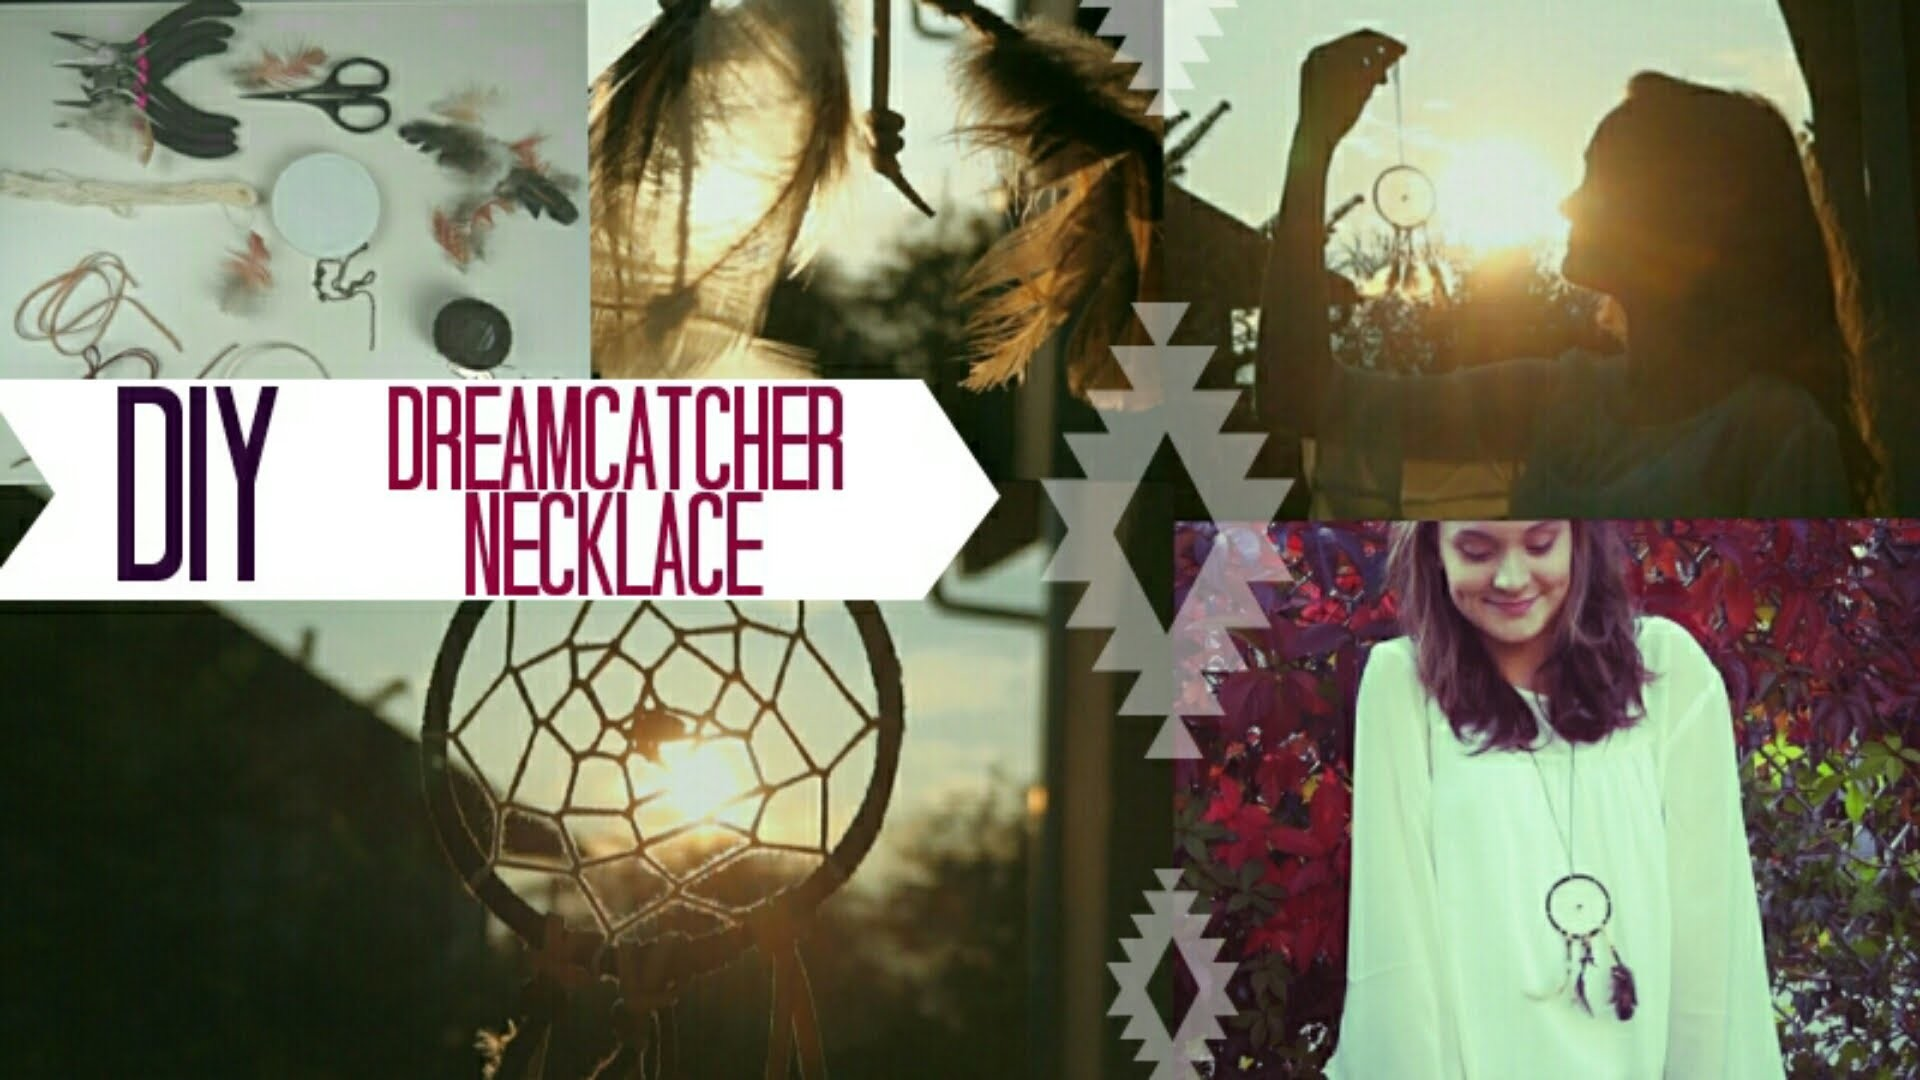 DIY dreamcatcher necklace. Traumfänger Halskette